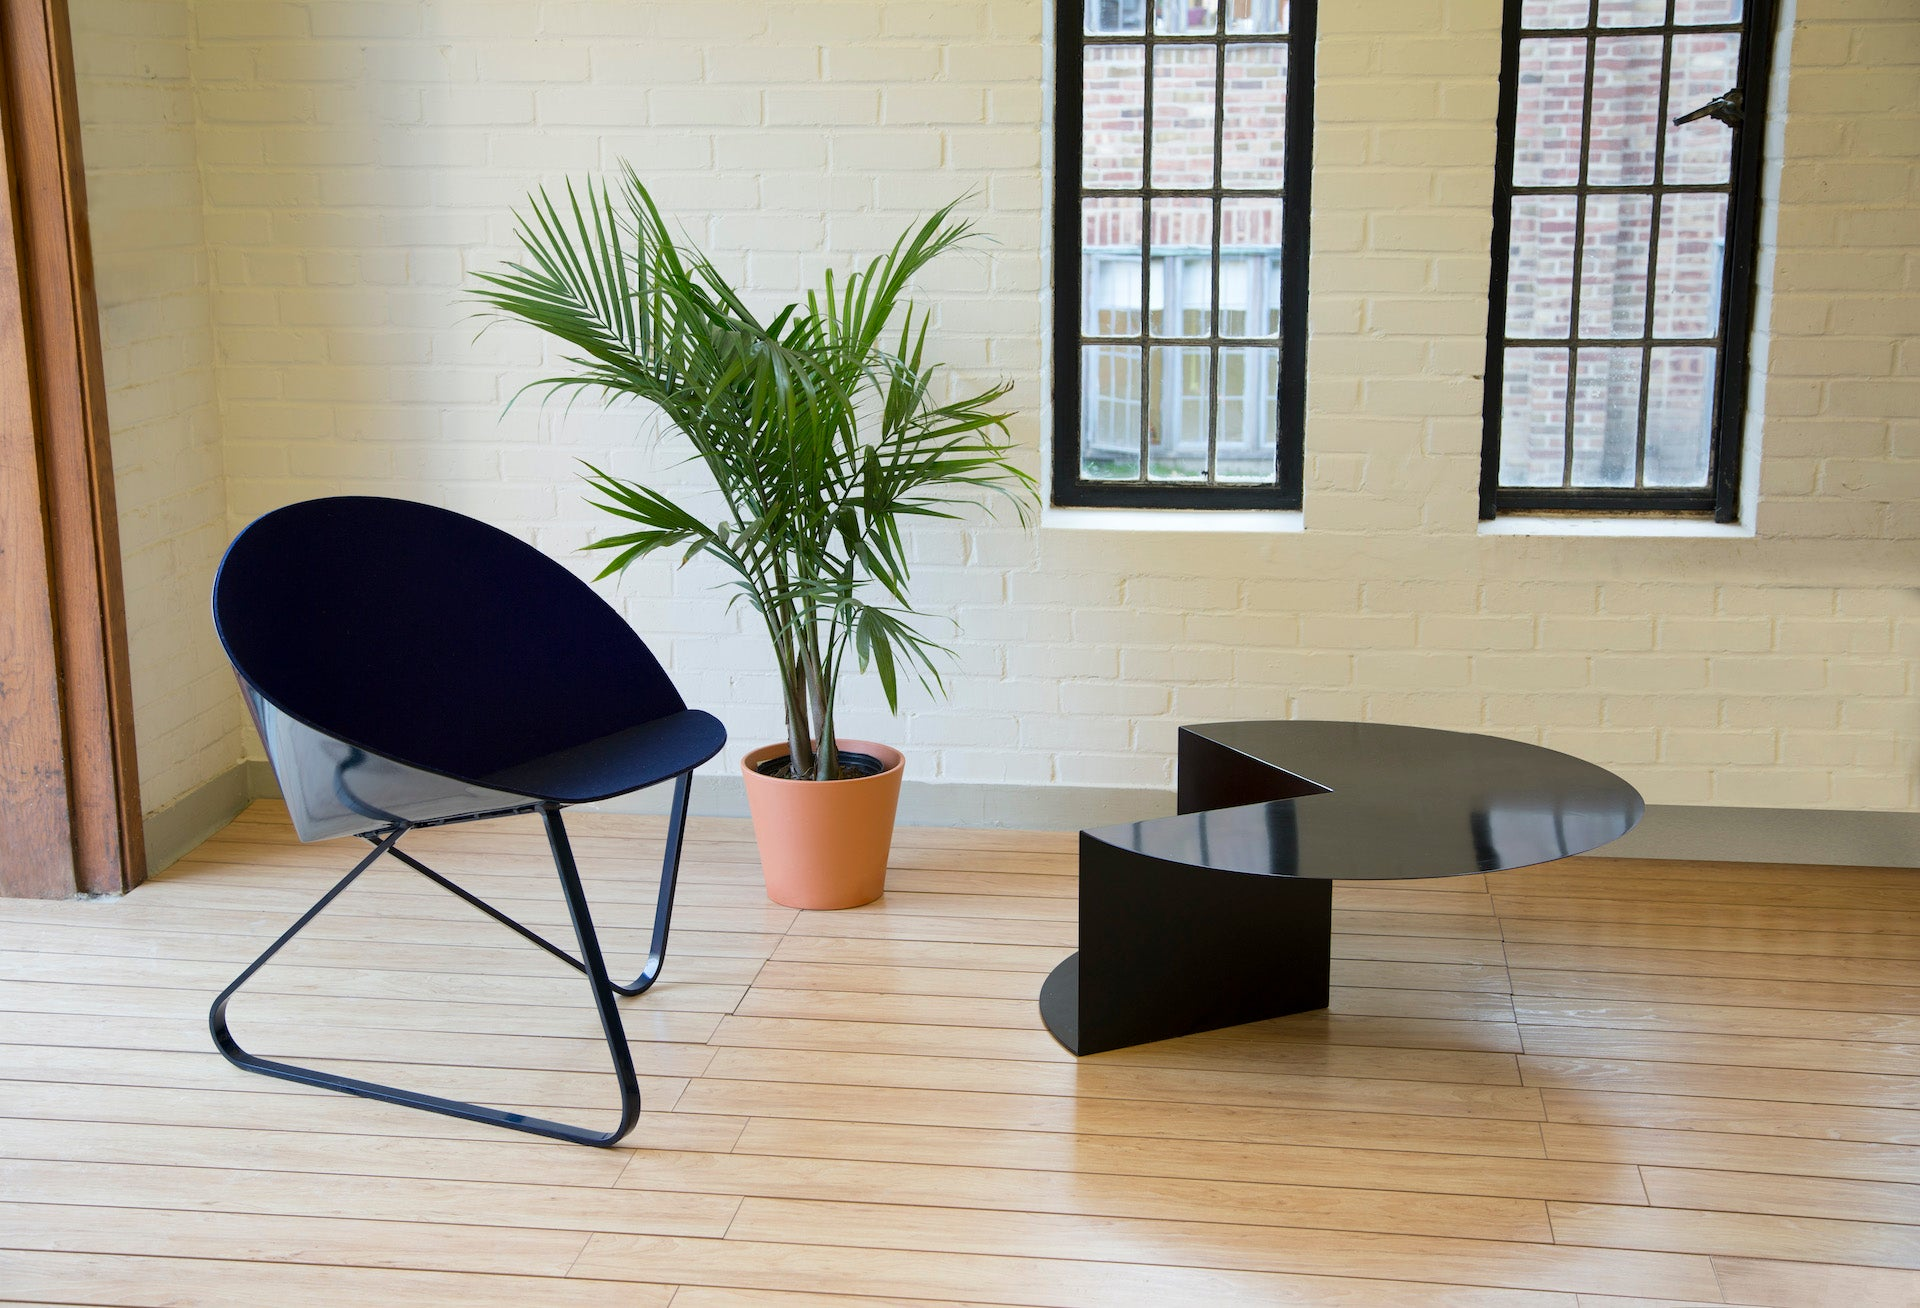 """Cho's Curved Chair and Cantilever Table. """"This photo was shot inside a 3D design studio at Cranbrook Academy of Art, where I received my first and only education in America,"""" Cho says. """"Having that experience at an American graduate school was hugely influential to me."""" Photo © Nina Cho"""